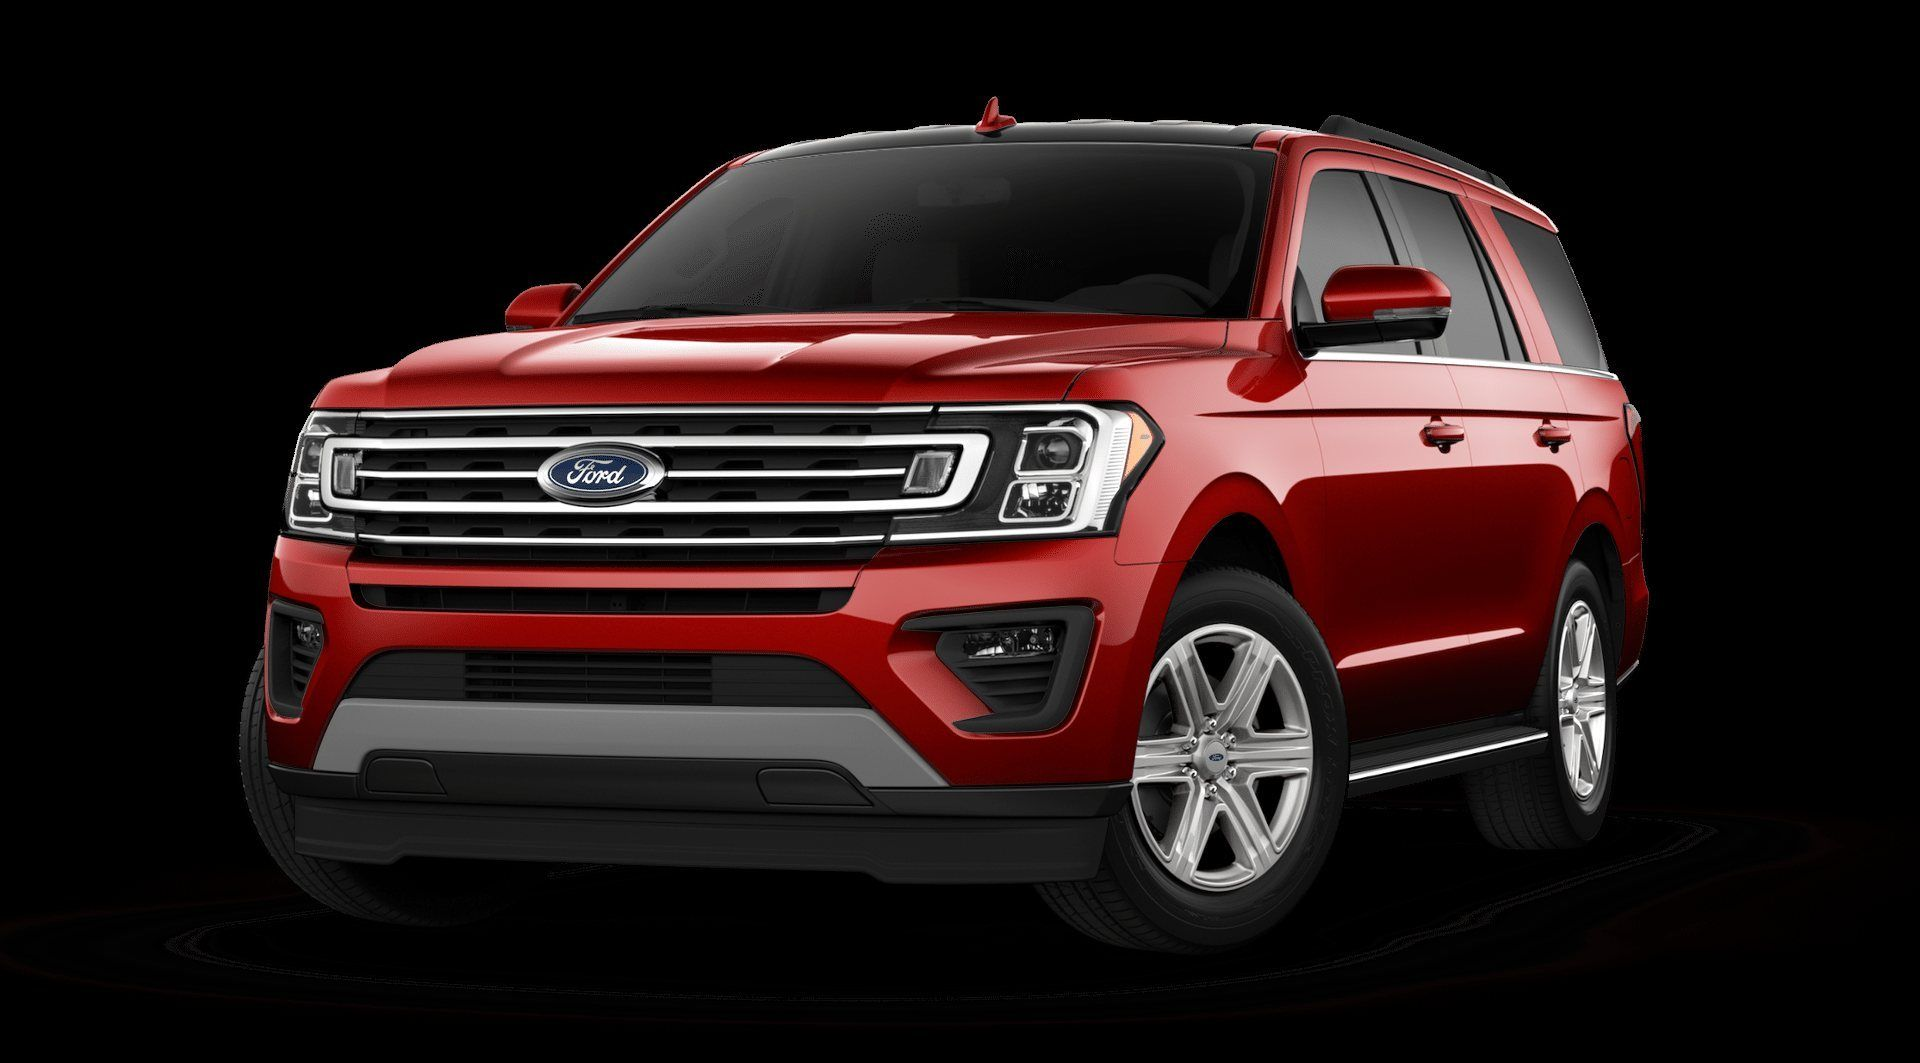 2020 Ford Expedition Interior In 2020 Ford Expedition Expedition Ford